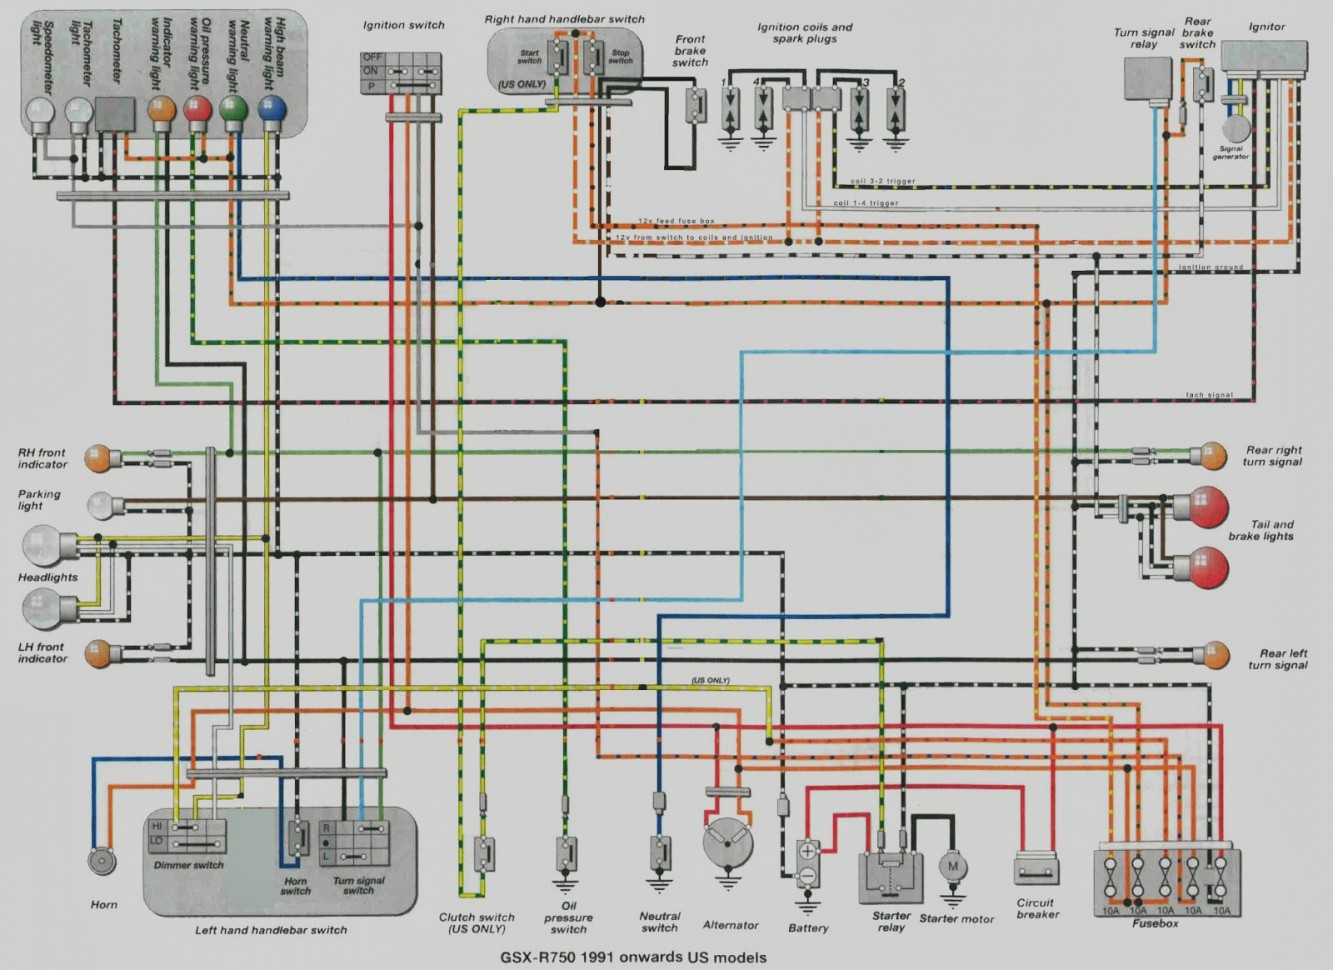 VC_1584] Suzuki Gn400 Motorcycle Complete Electrical Wiring Diagram All  About Schematic WiringHroni Barep Over Boapu Mohammedshrine Librar Wiring 101